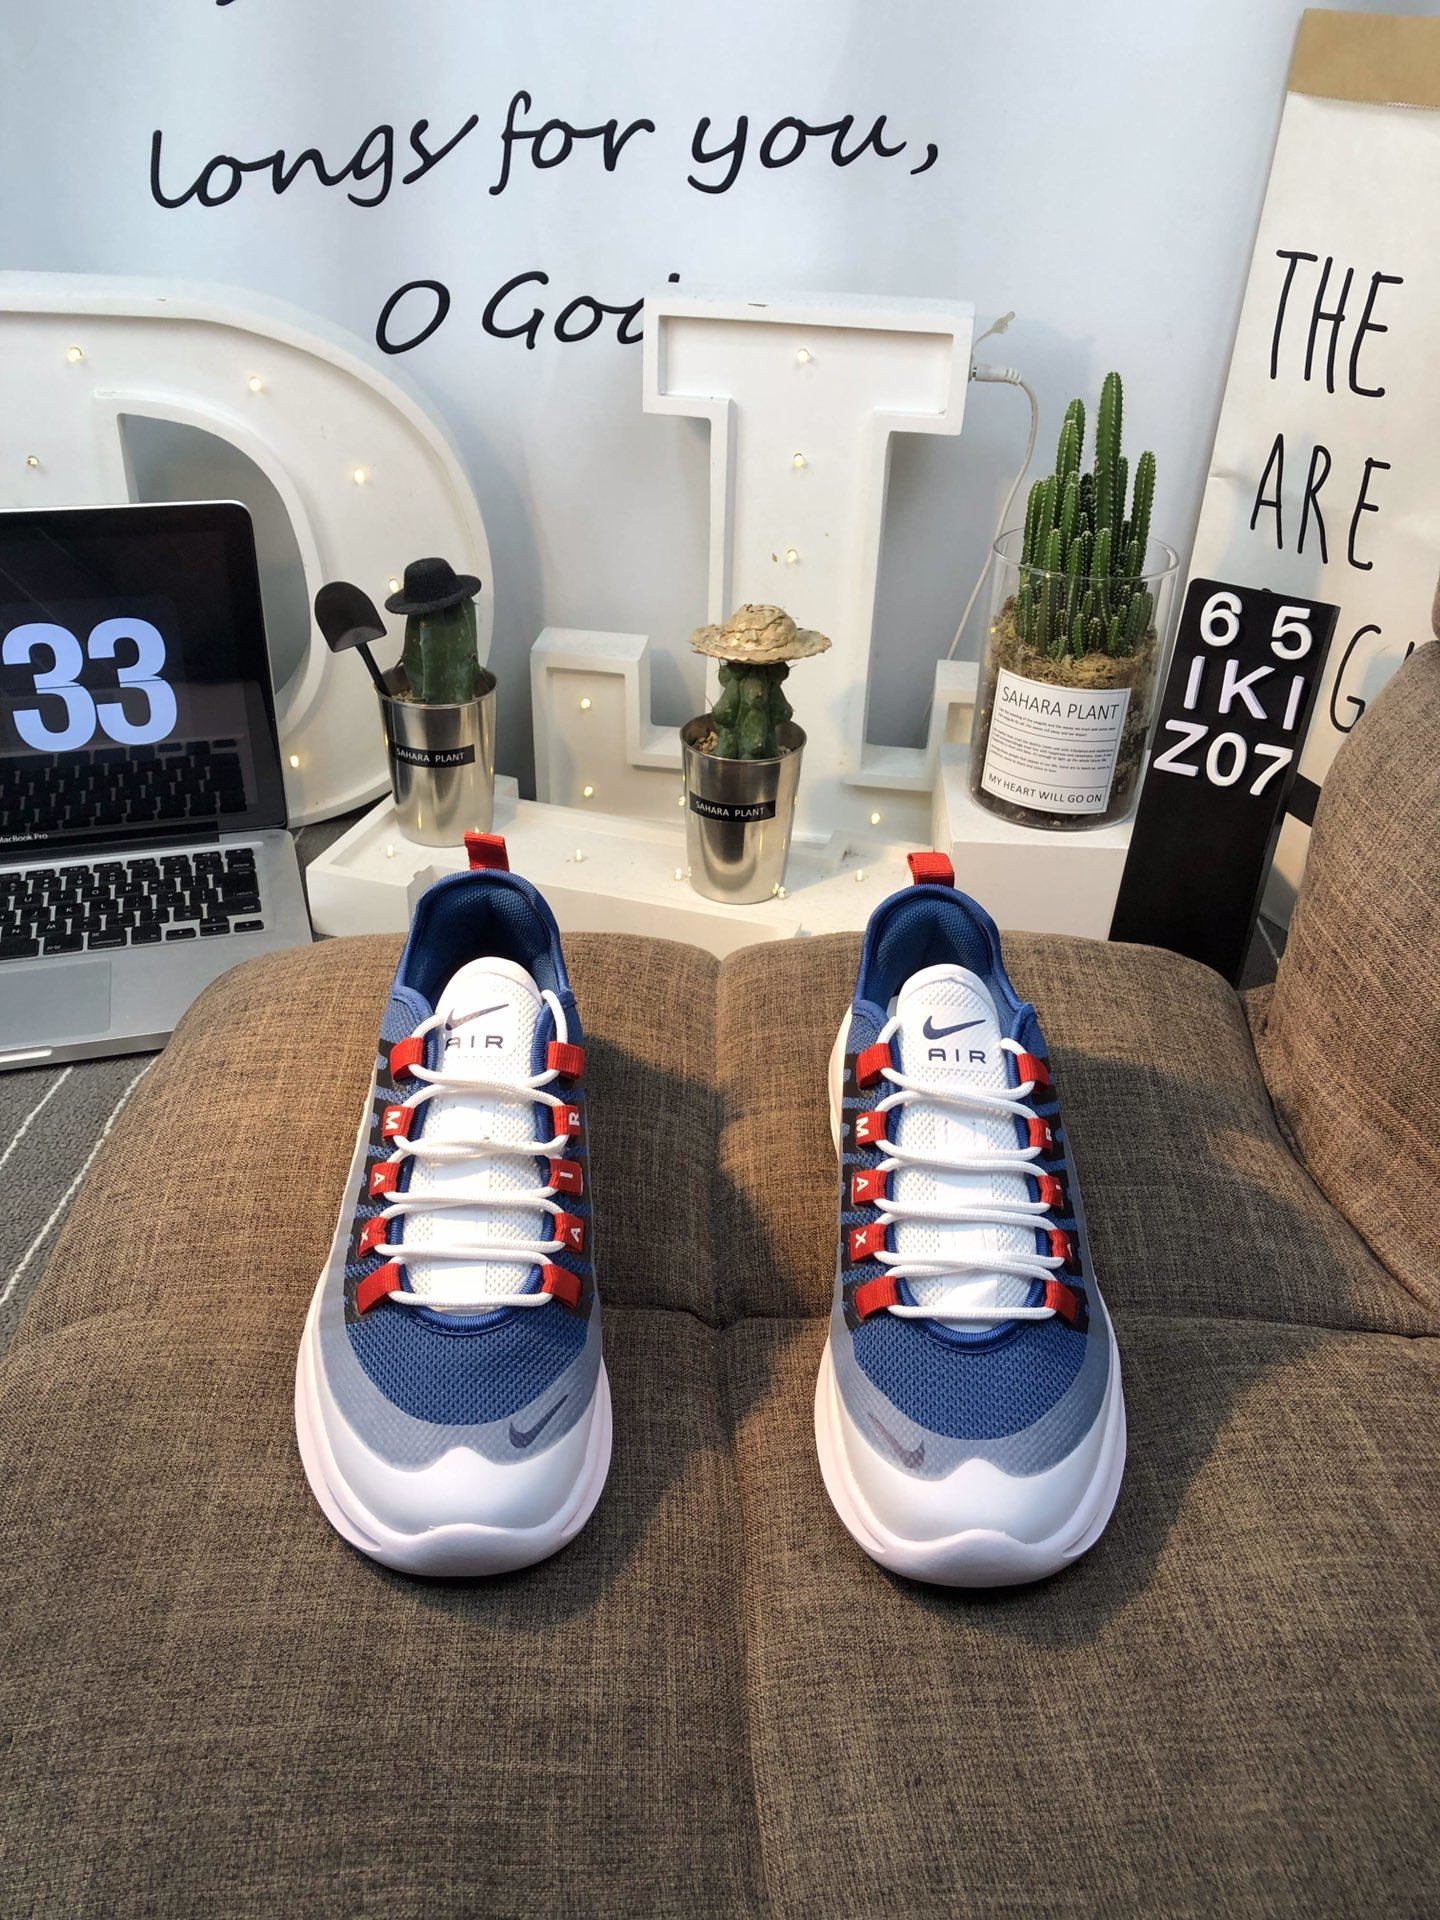 Nike Air Max 98 shoes- 0021